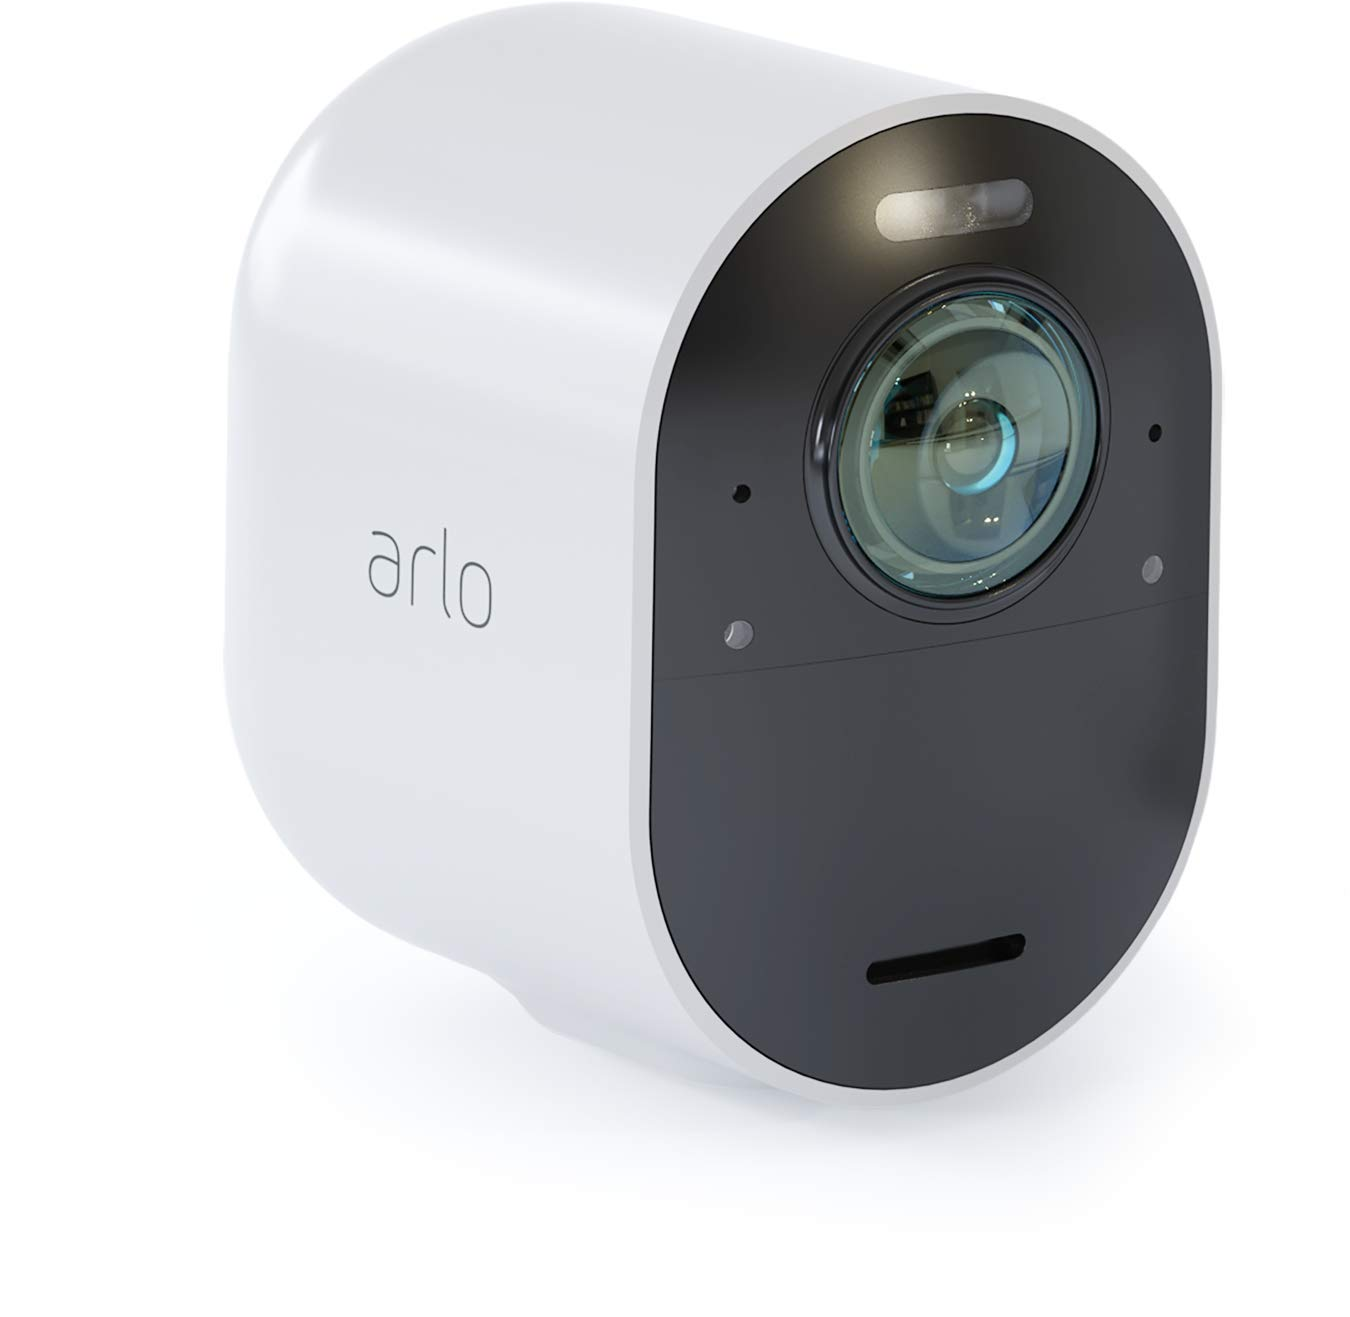 Arlo Ultra - 4K UHD Wire-Free Security Add-on Camera   Indoor/Outdoor Security Camera with Color Night Vision, 180° View   Requires an Ultra SmartHub, sold separately   Works with Alexa   (VMC5040)